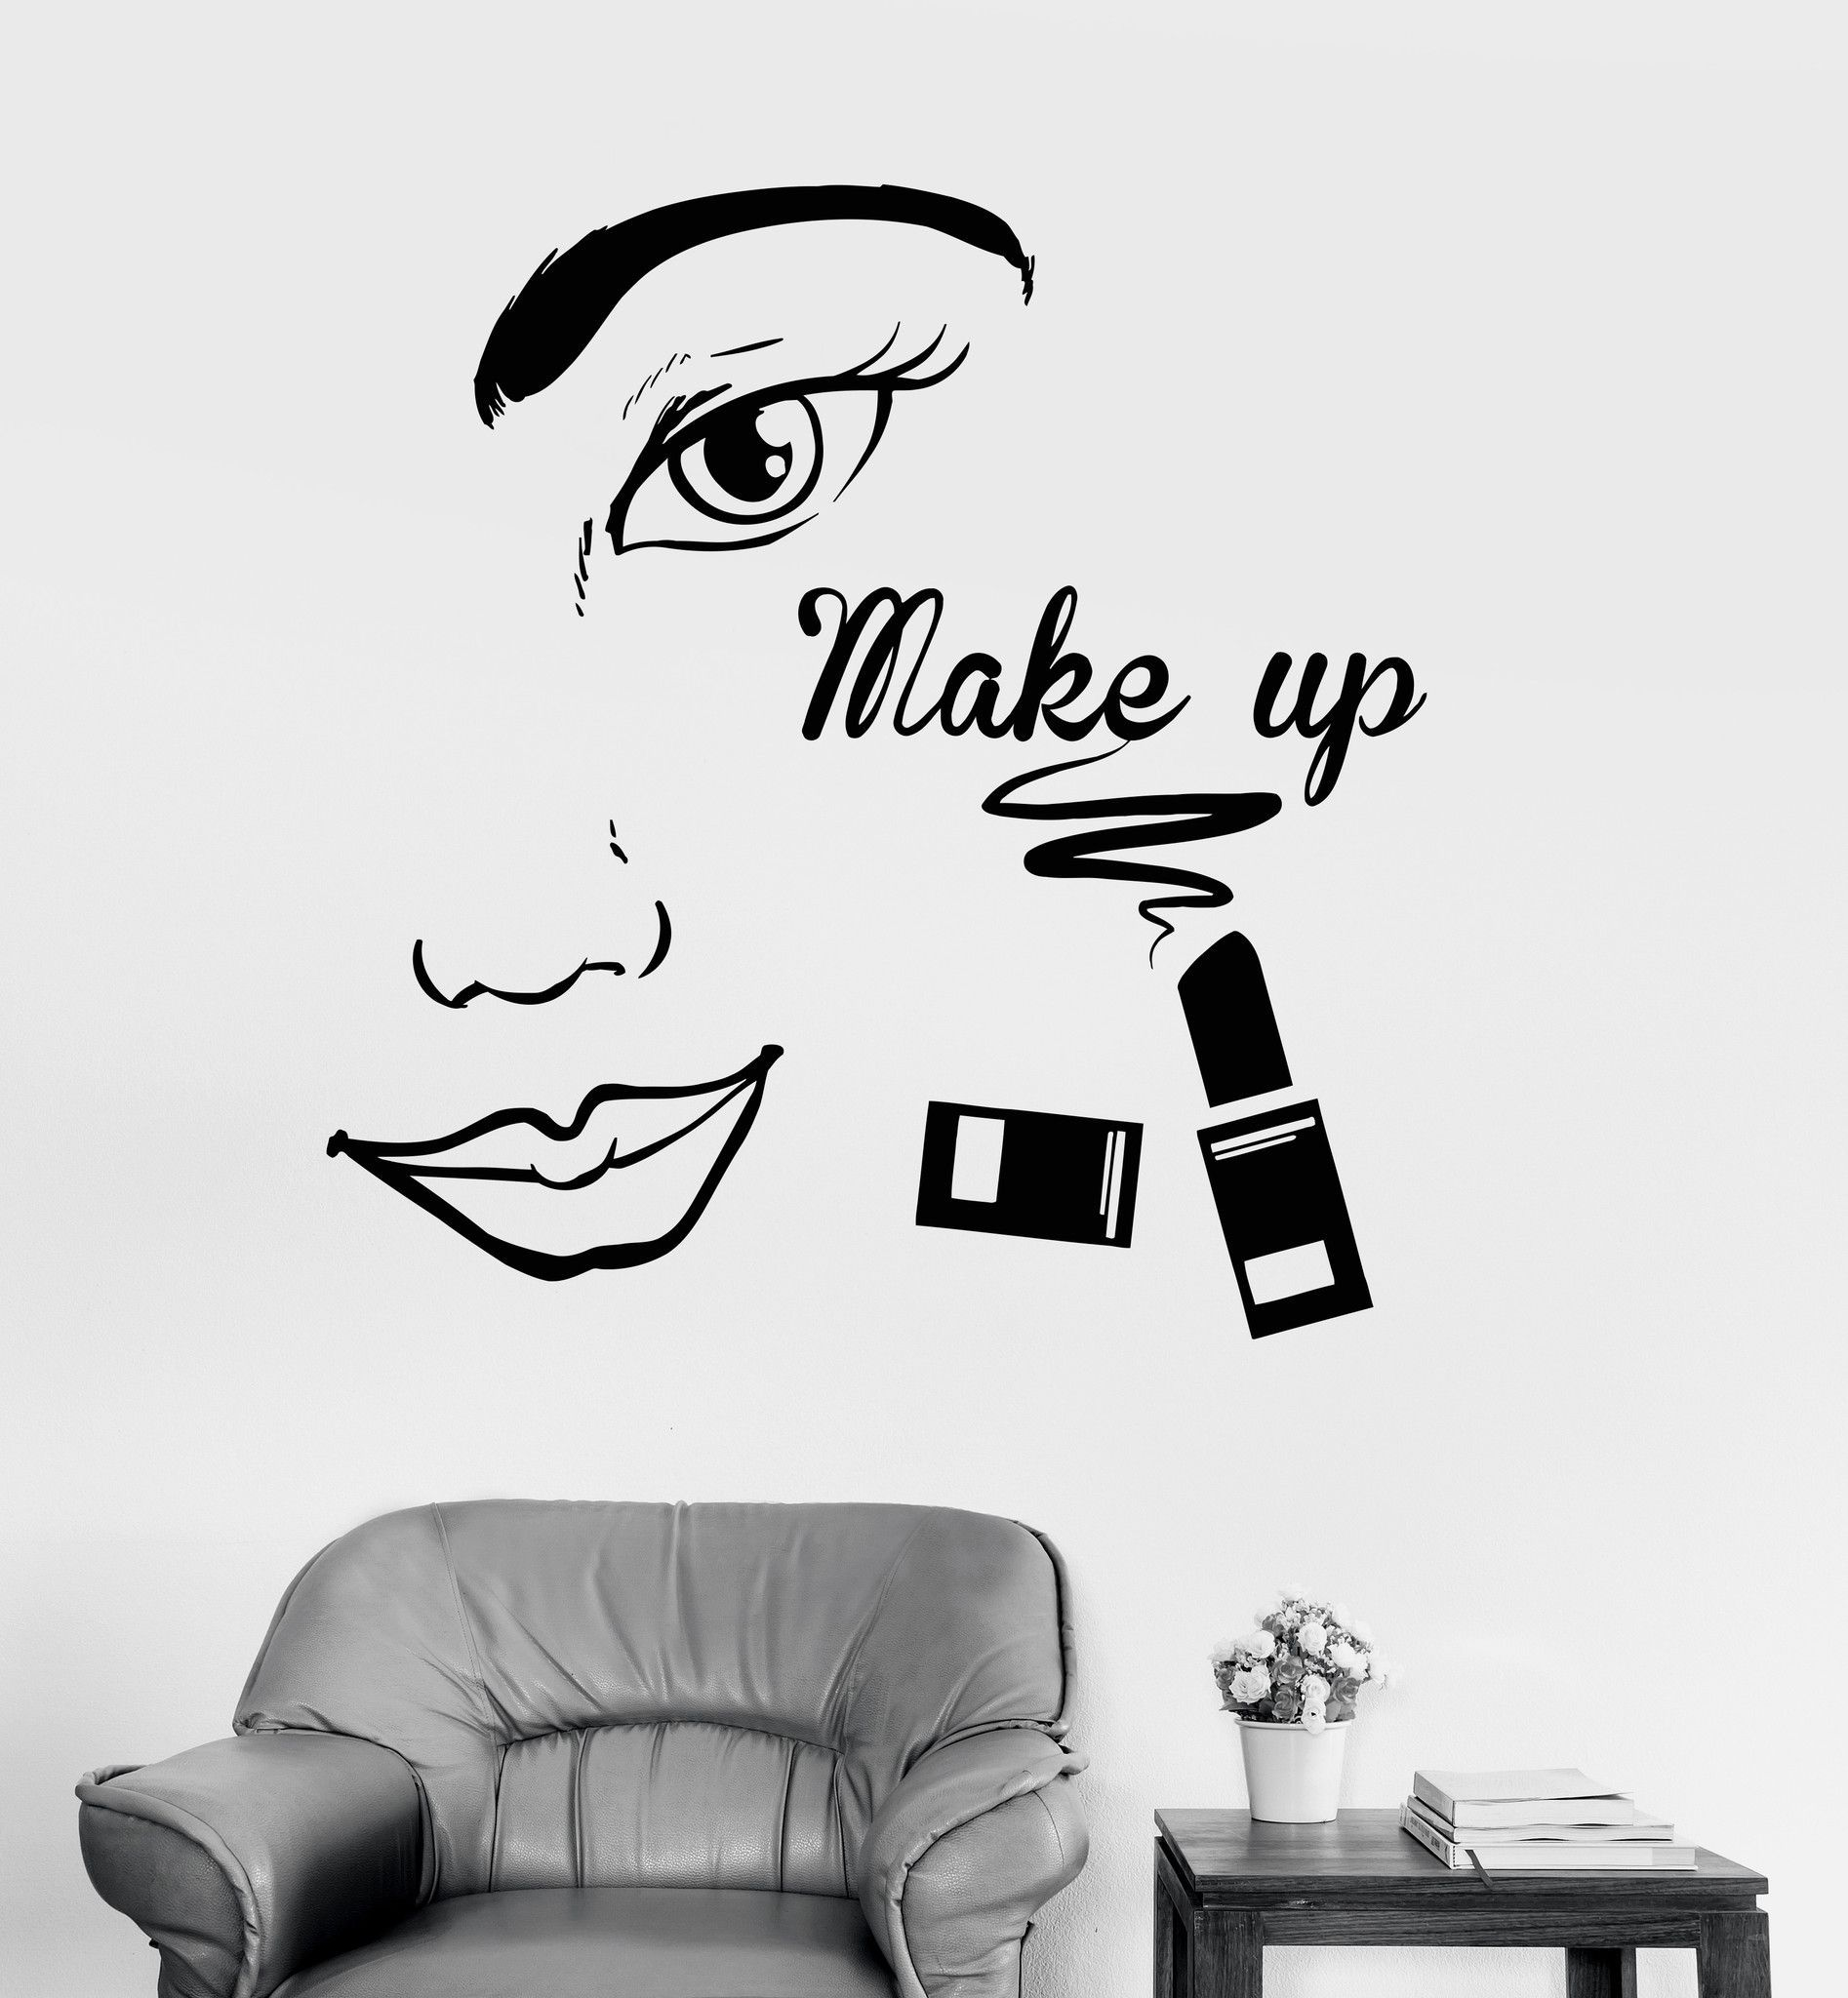 Wall decal new york letter frame cheap stickers world discount - Vinyl Wall Decal Make Up Beauty Salon Face Woman Girl Room Stickers Ig4057